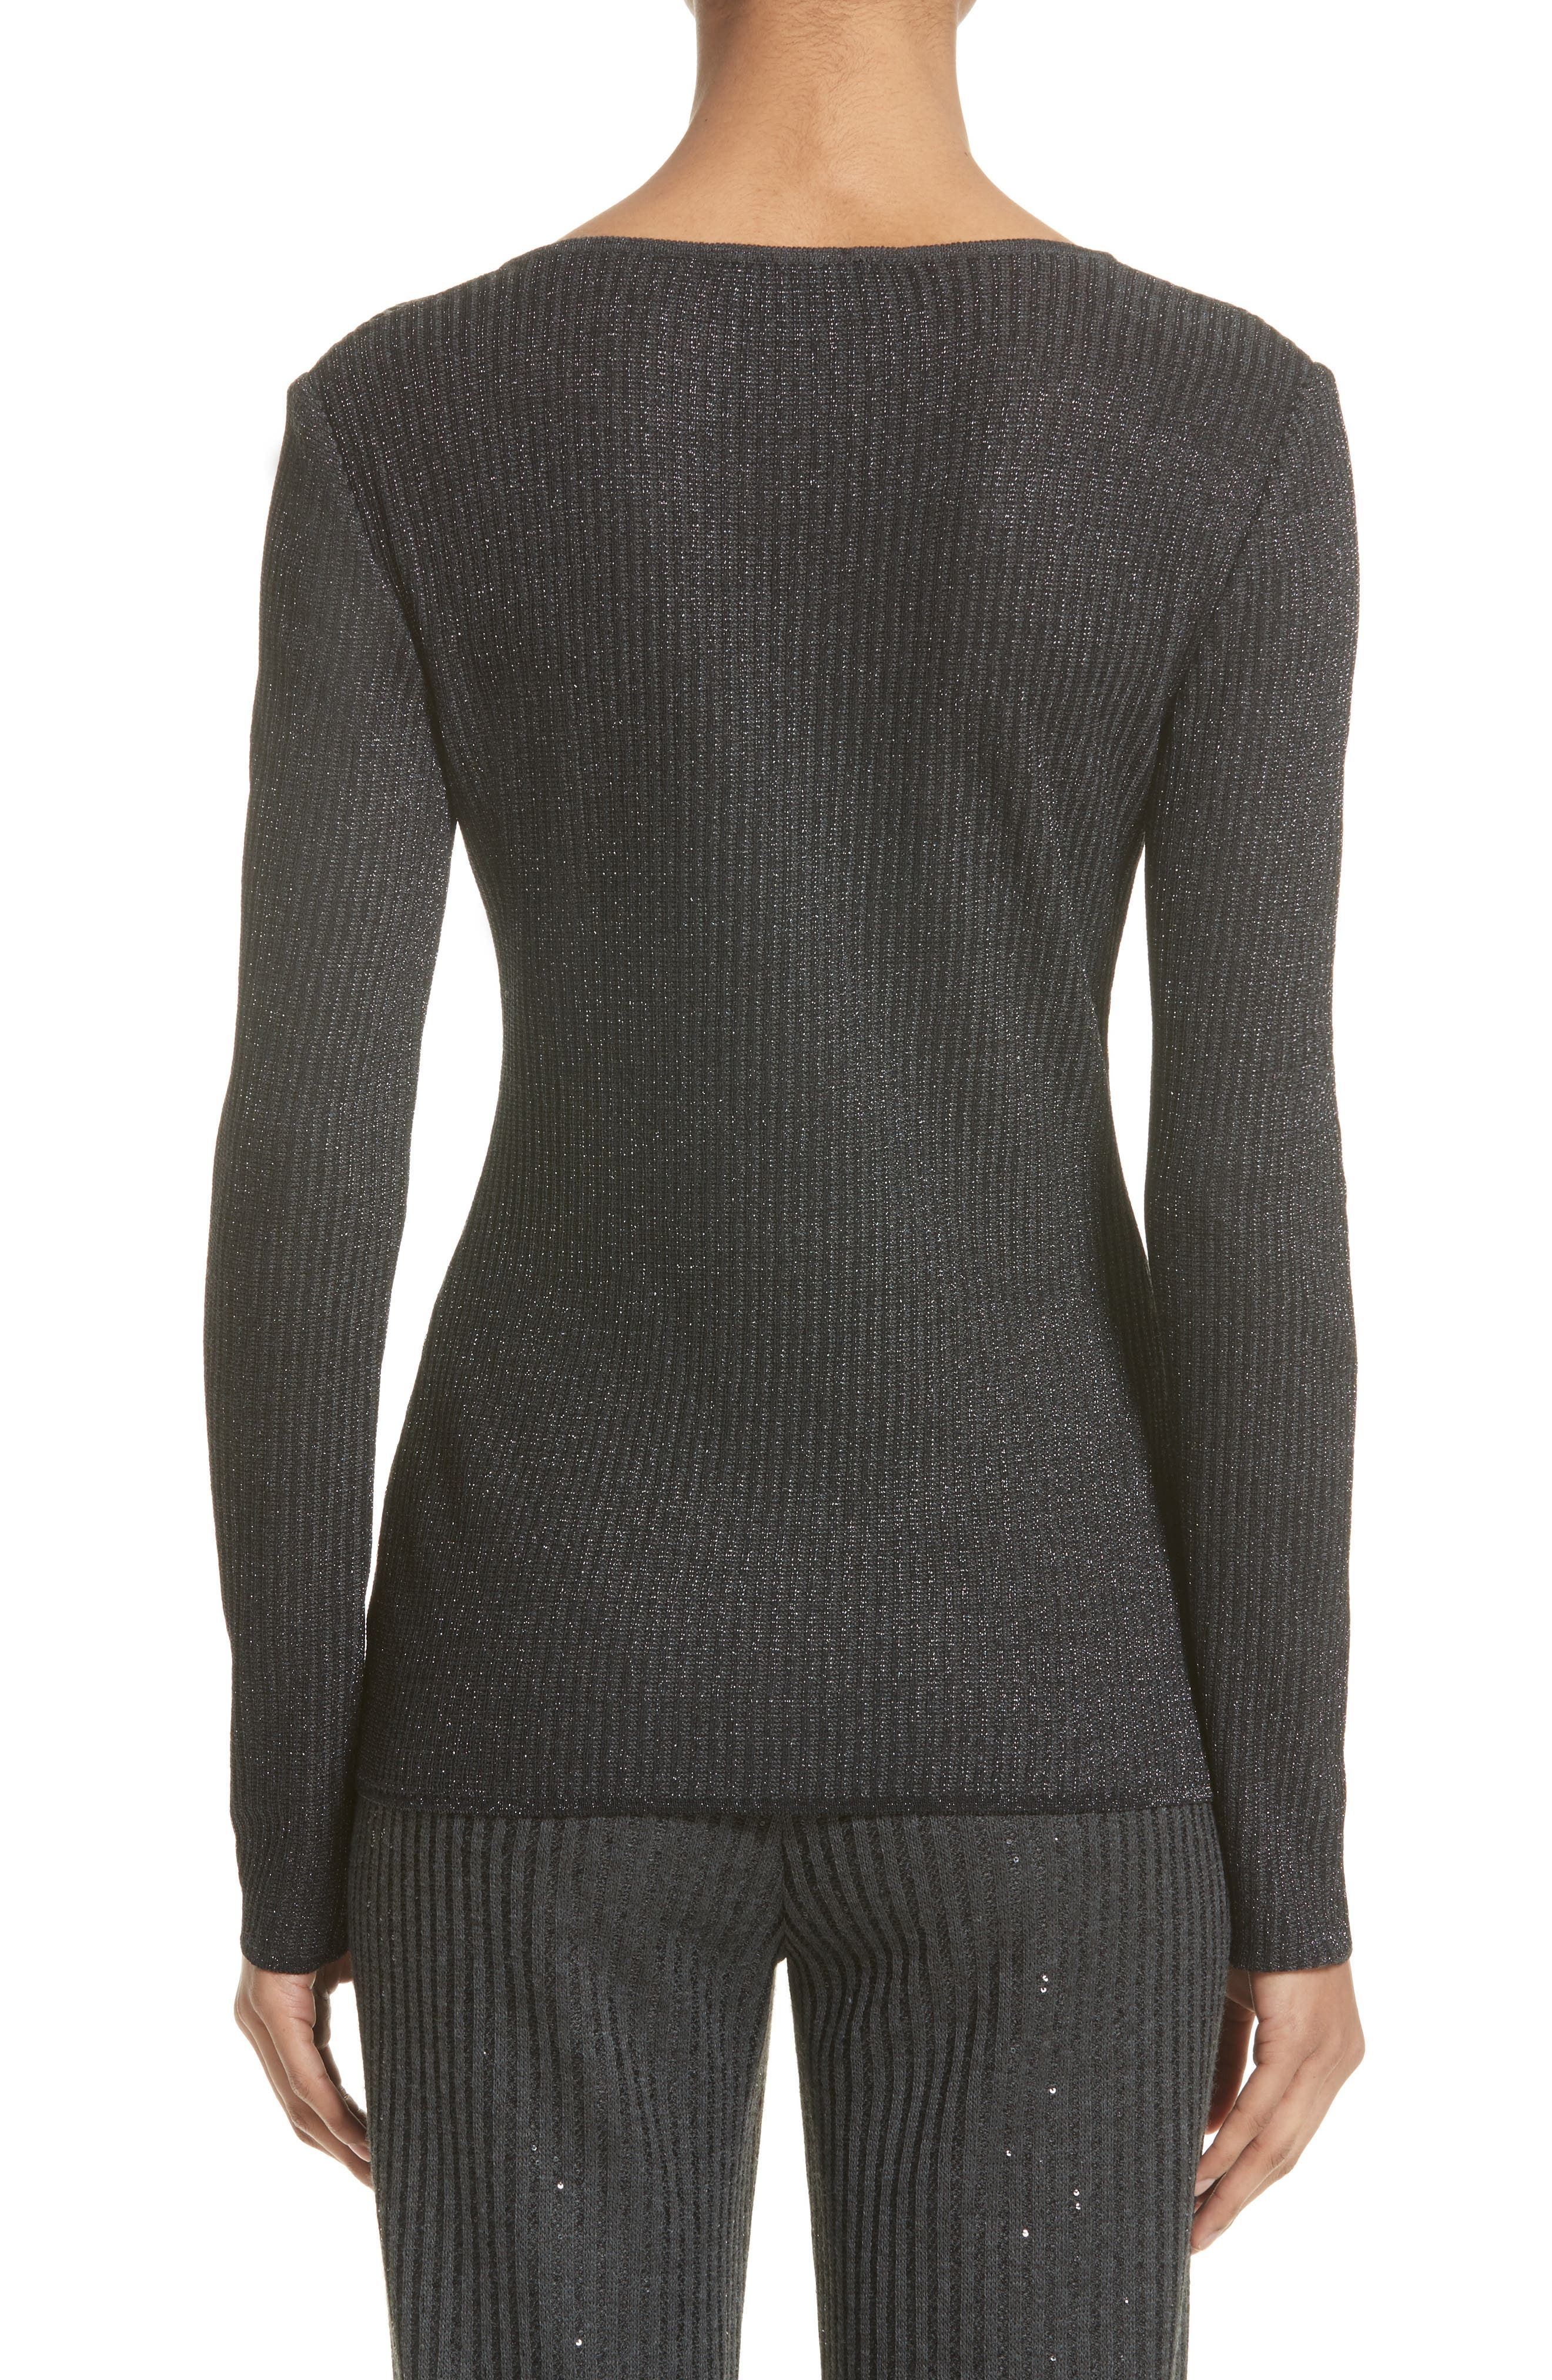 Alternate Image 2  - St. John Collection Engineered Rib Sparkle Knit Sweater